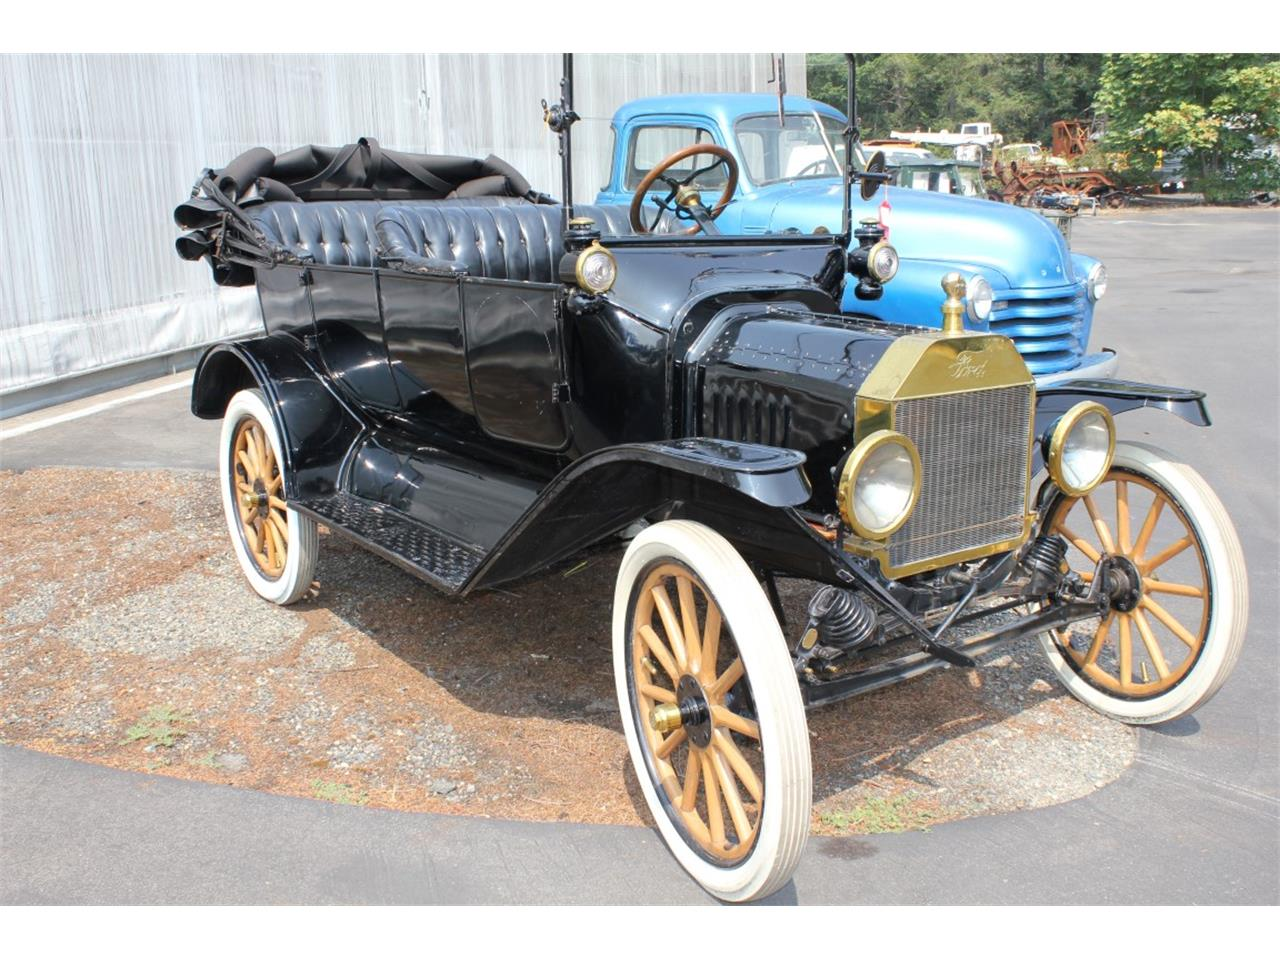 Large picture of 15 model t obc3